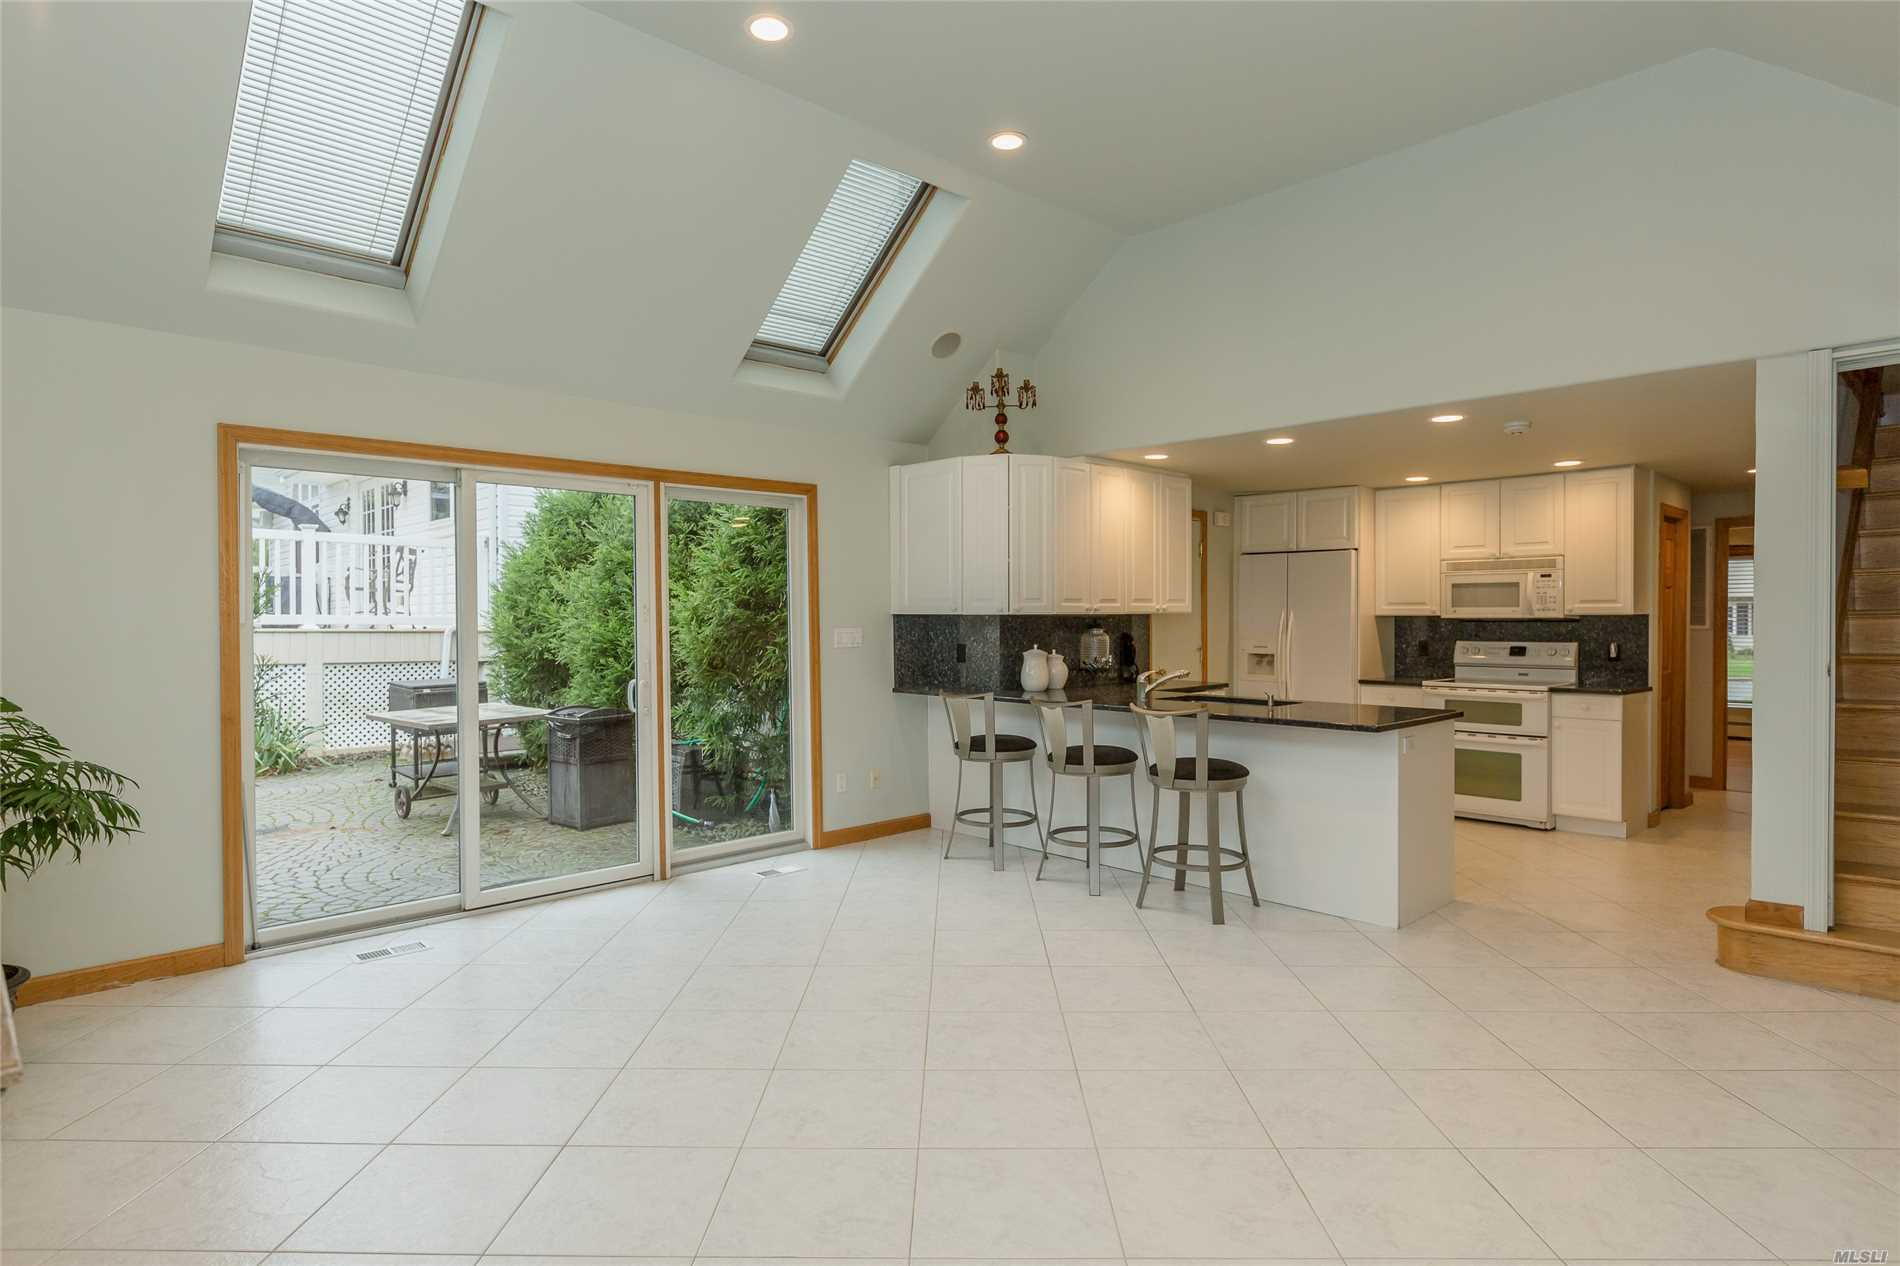 2 Dovecote Ln - Commack, New York